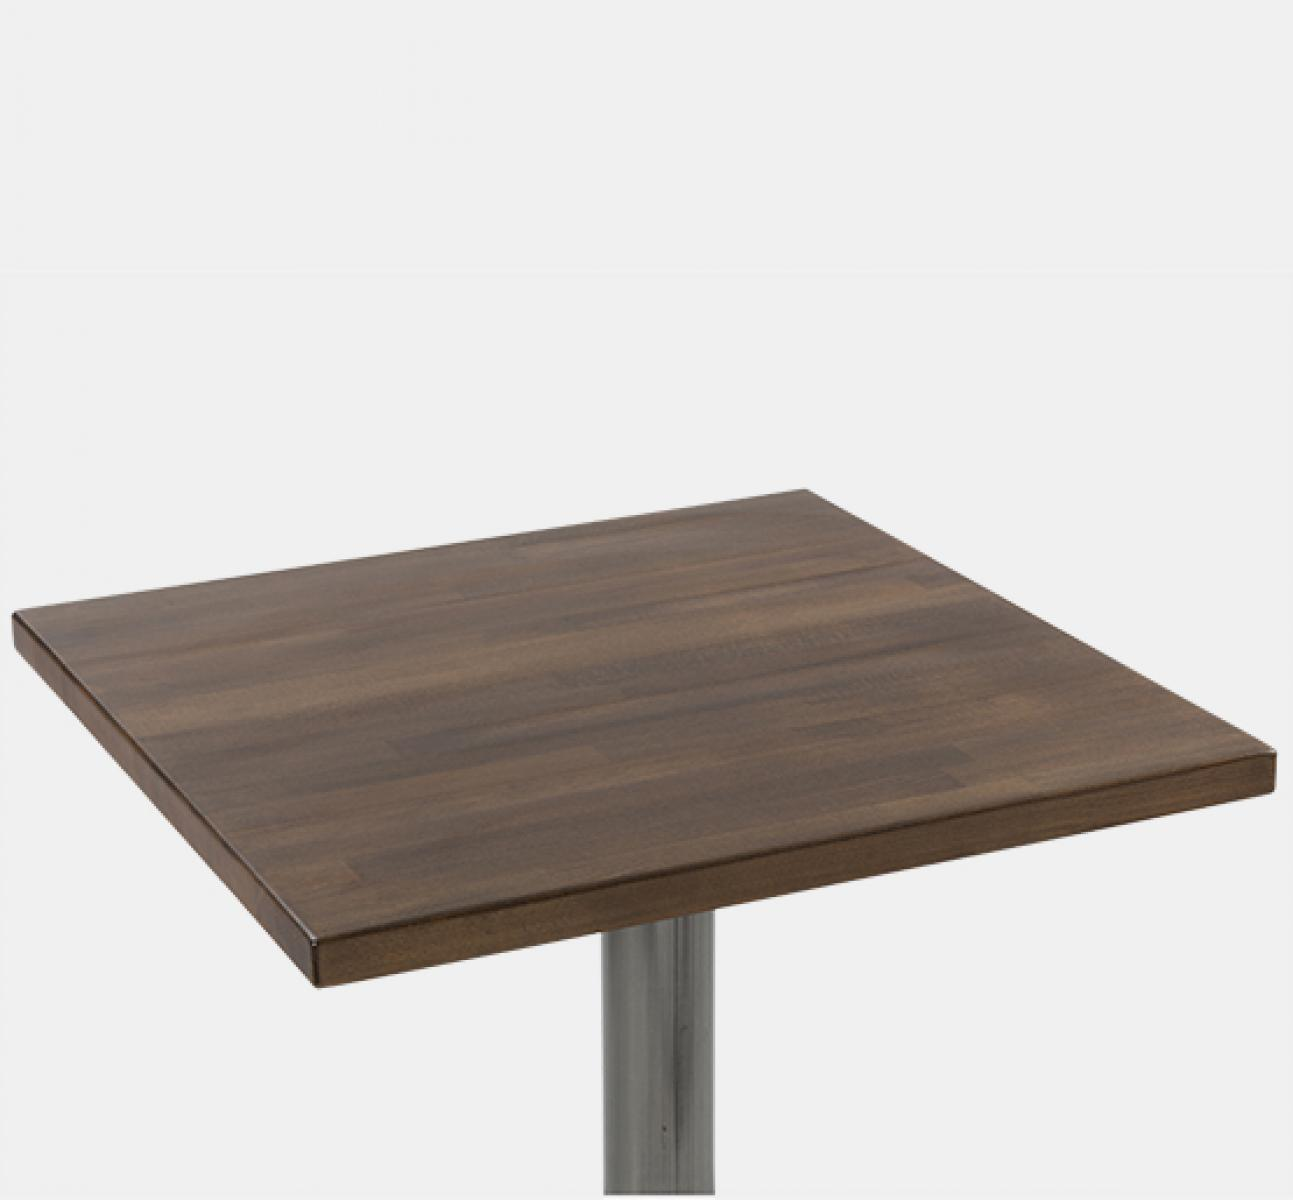 Square restaurant tables - Hampstead Square Table Top 700x700mm